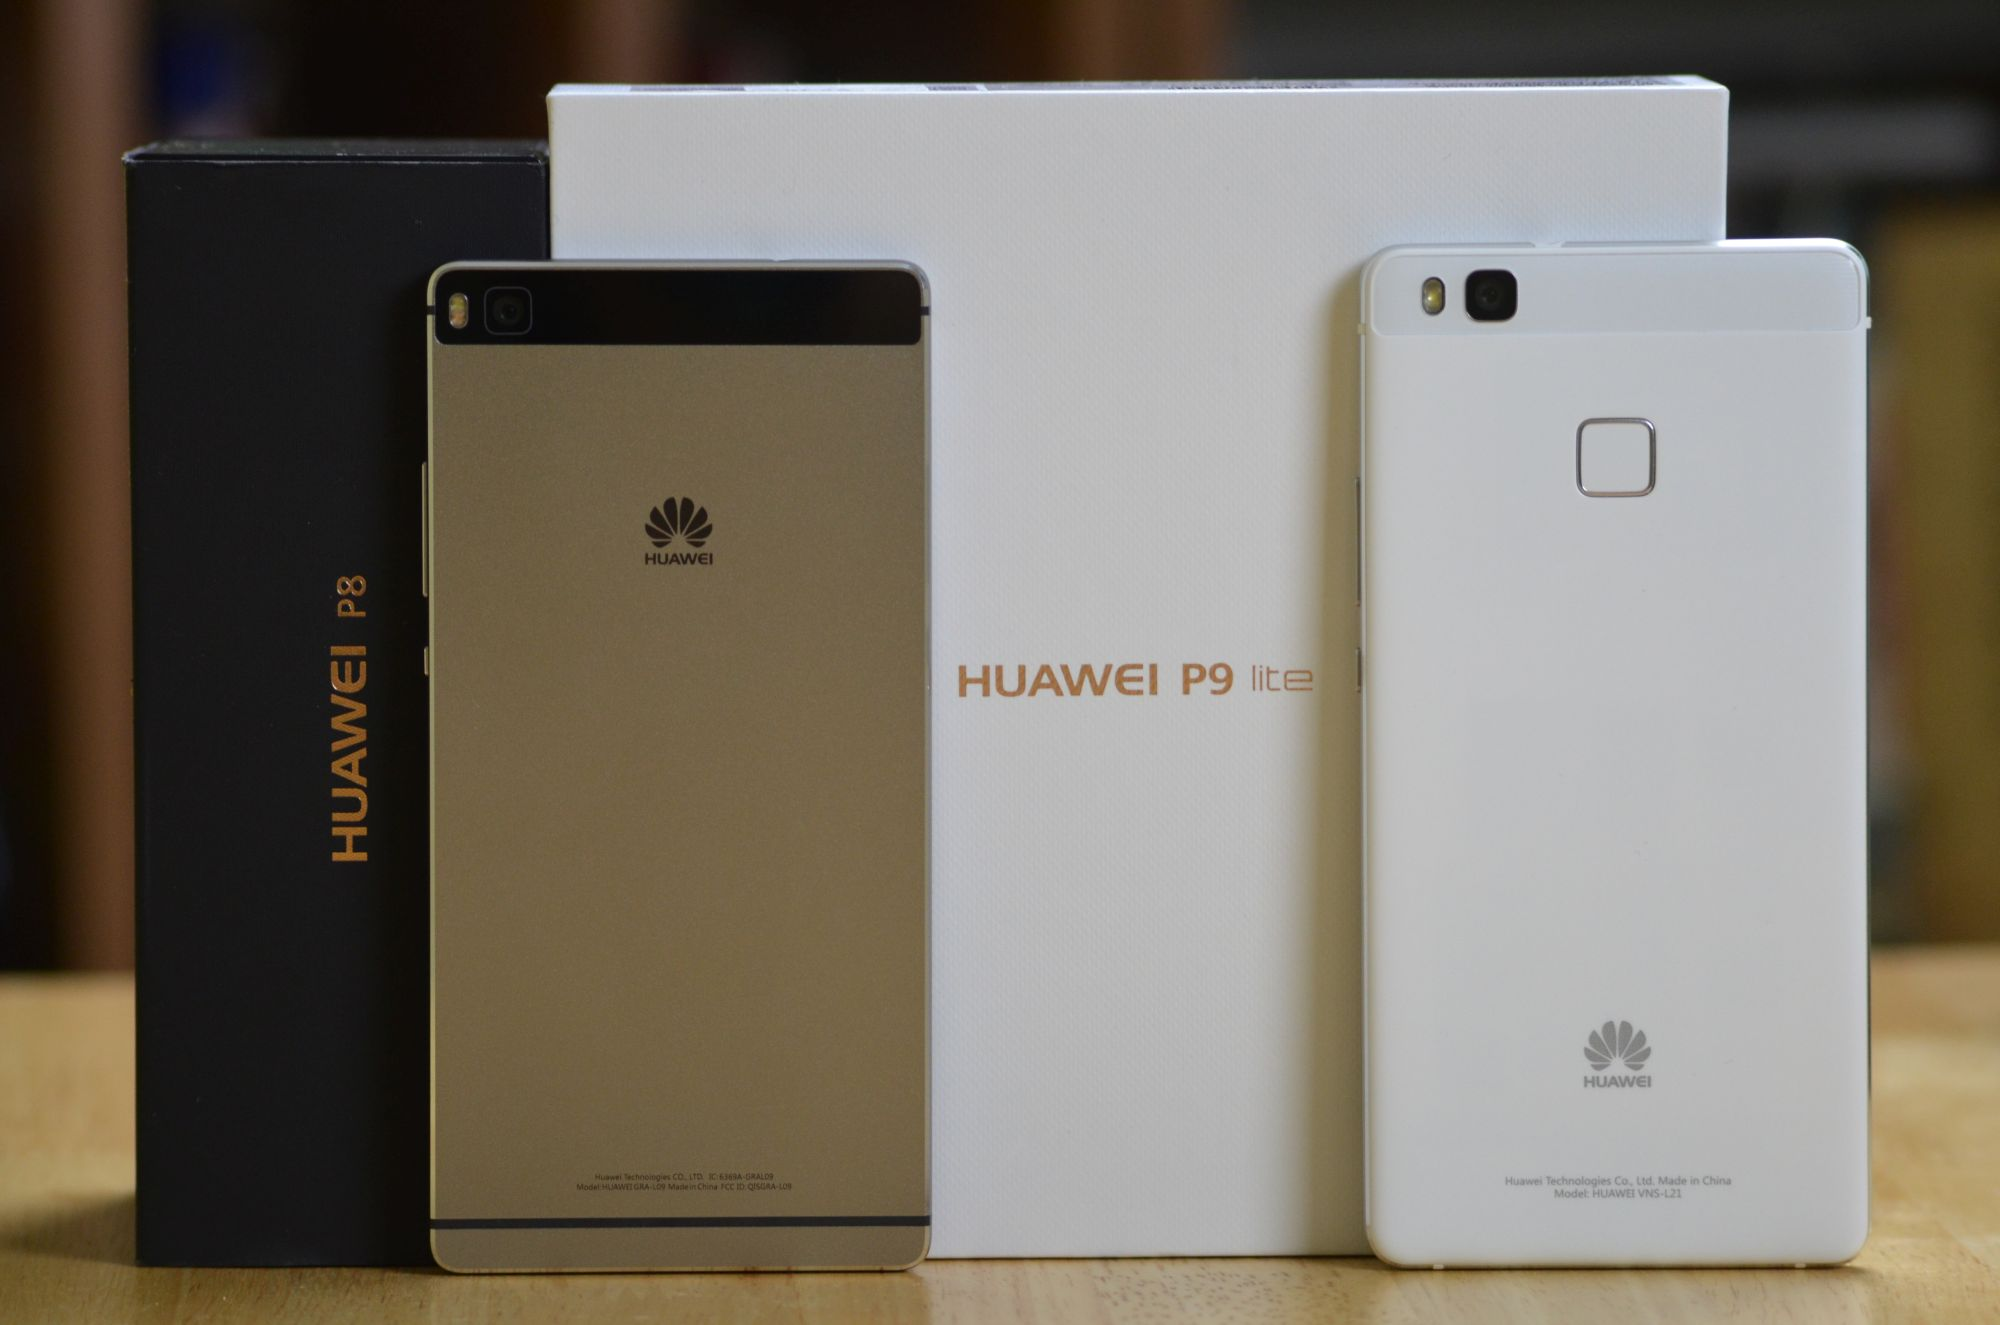 LAUNCHES UPCOMING huawei p9 vs huawei p9 lite tablet powered